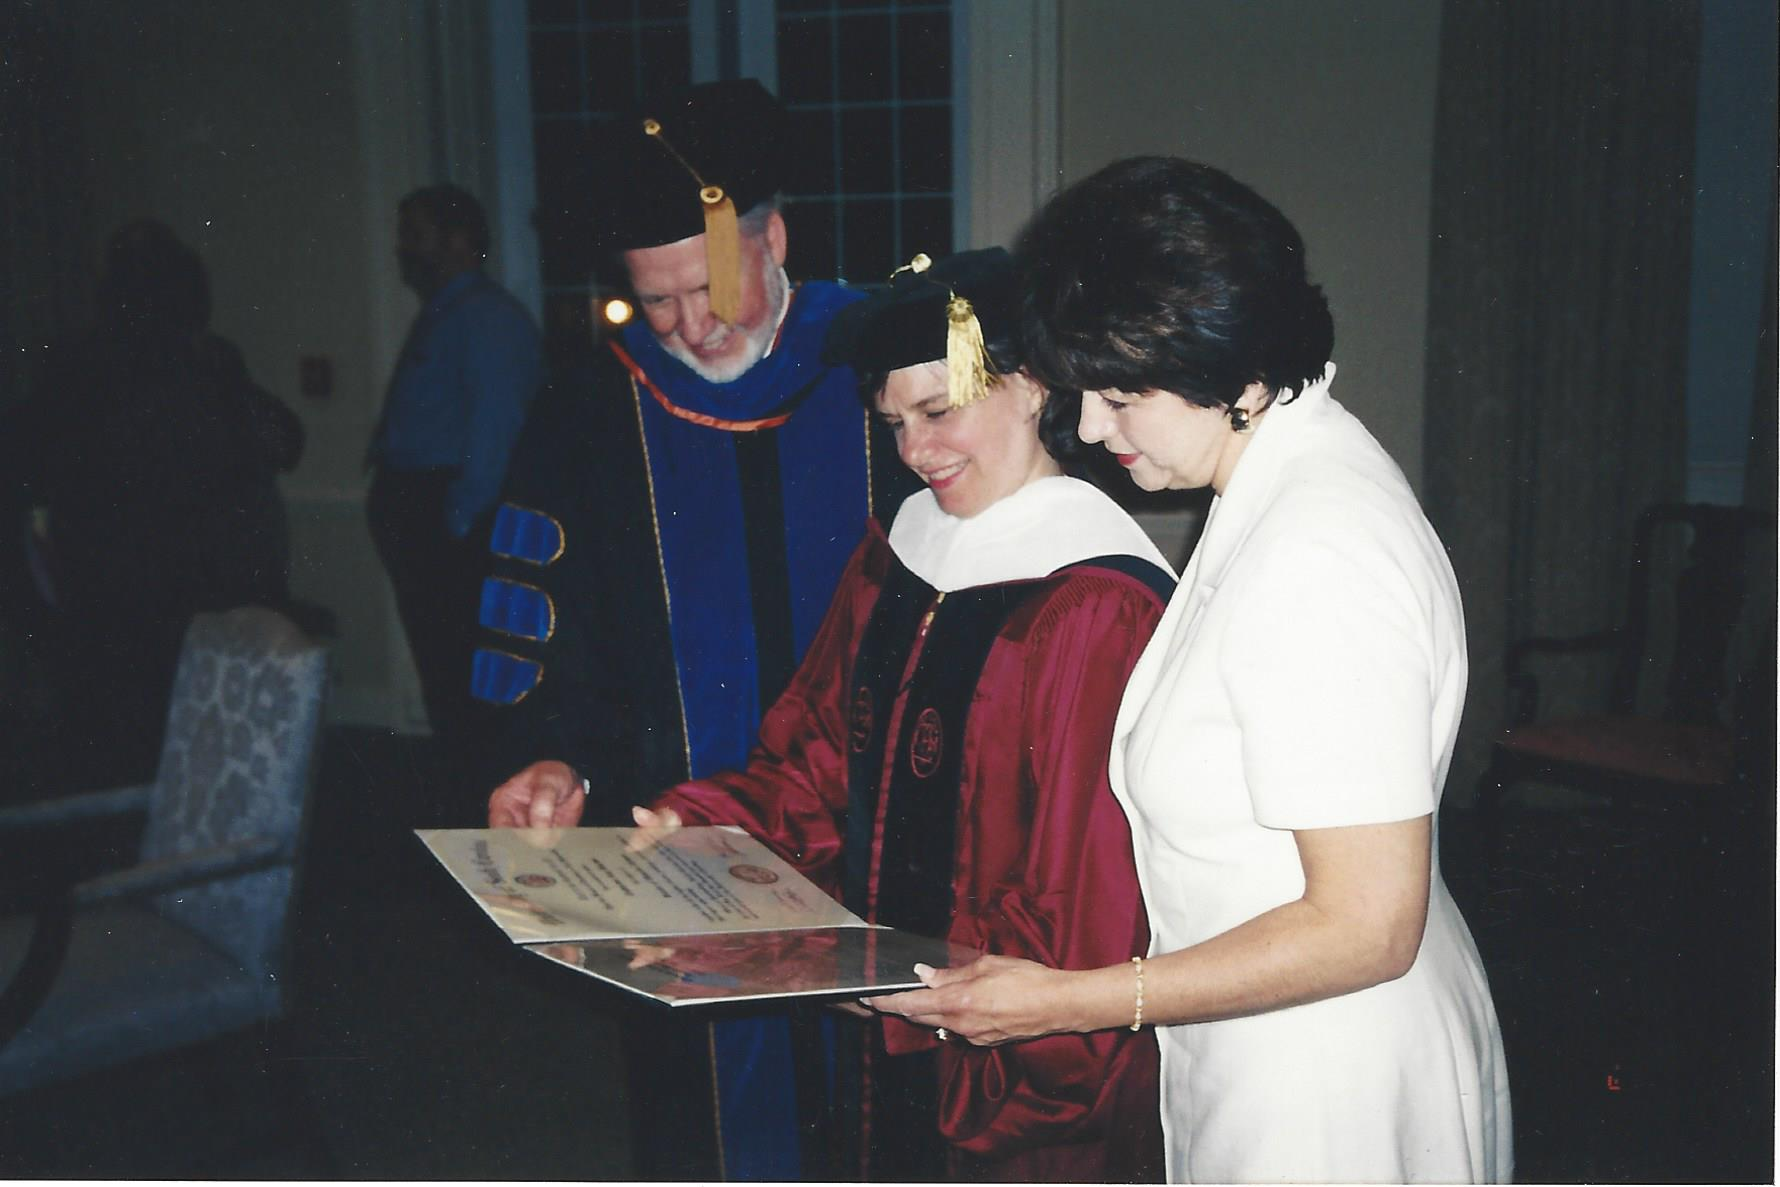 University of South Carolina Honorary Degree with Chancellor John Stockwell and Professor Diane Vecchio (2003)